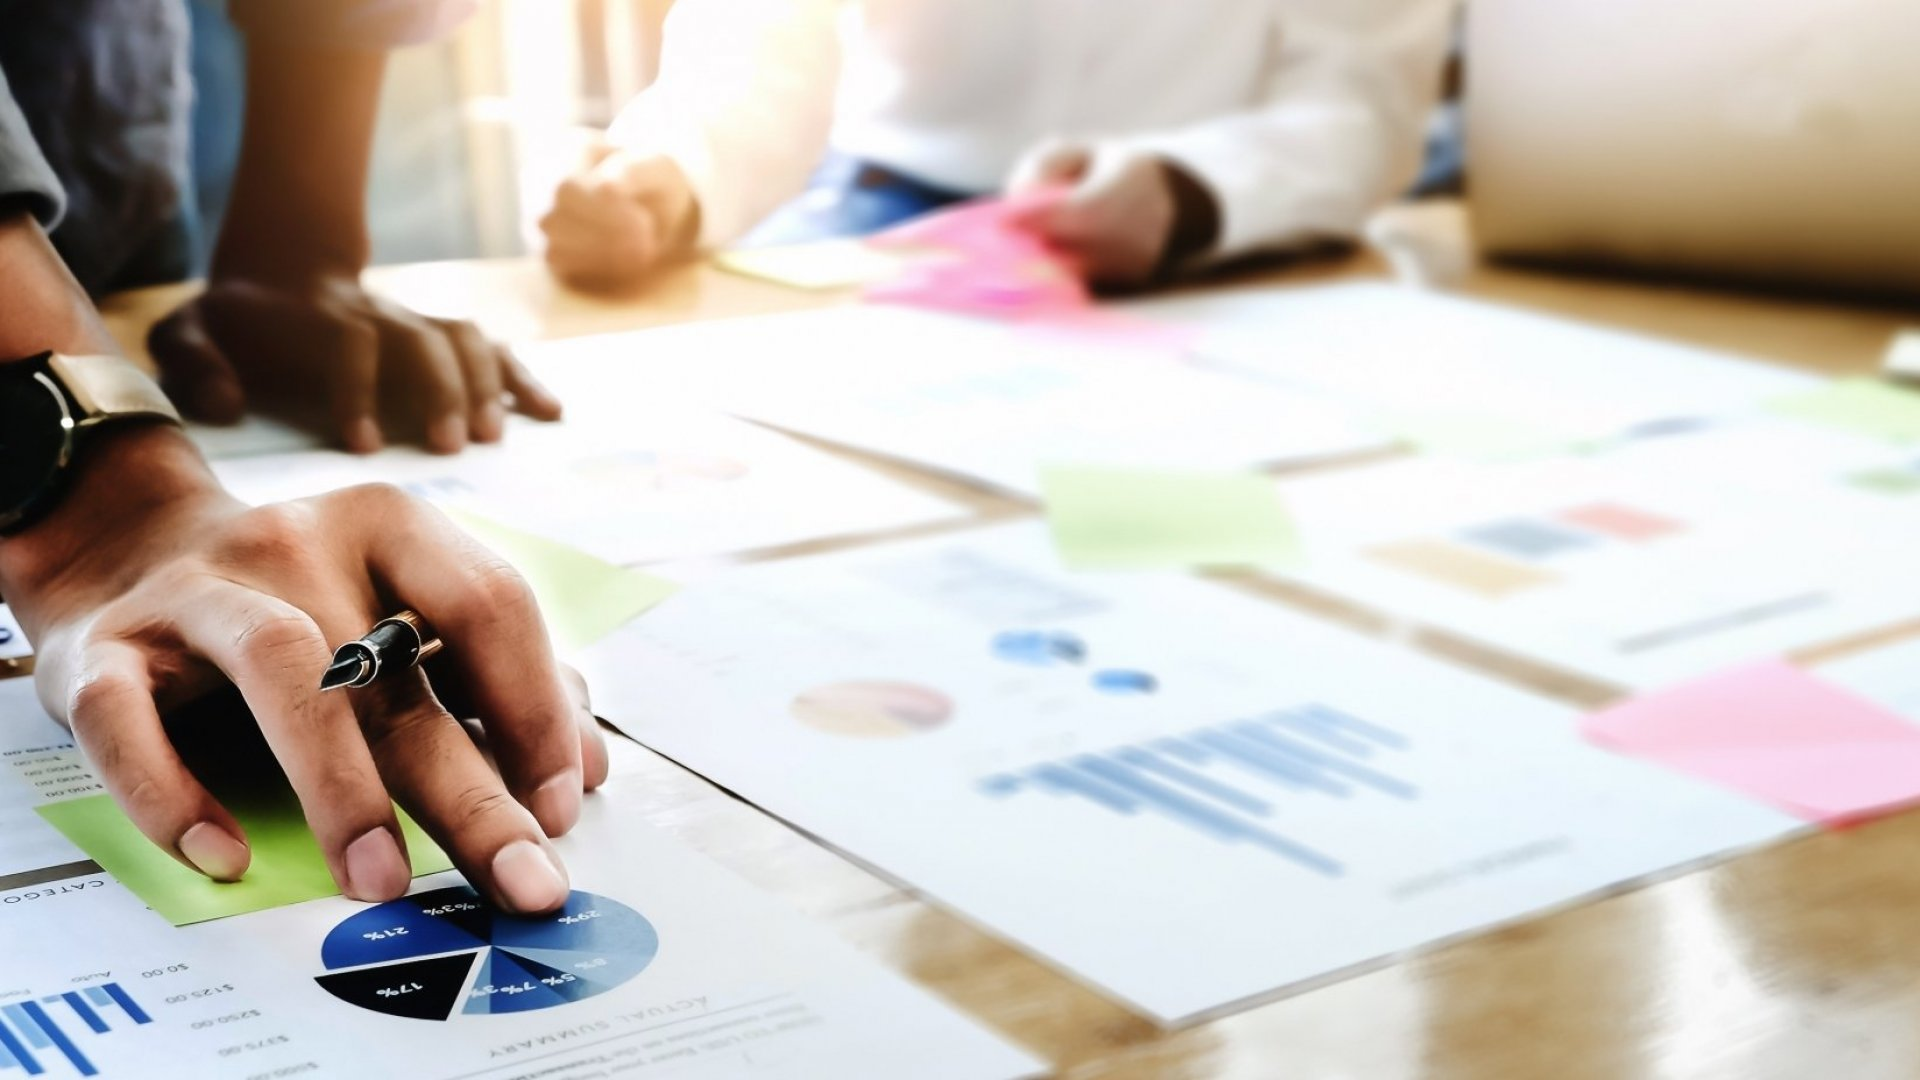 Project Management and PRINCE2 methodology